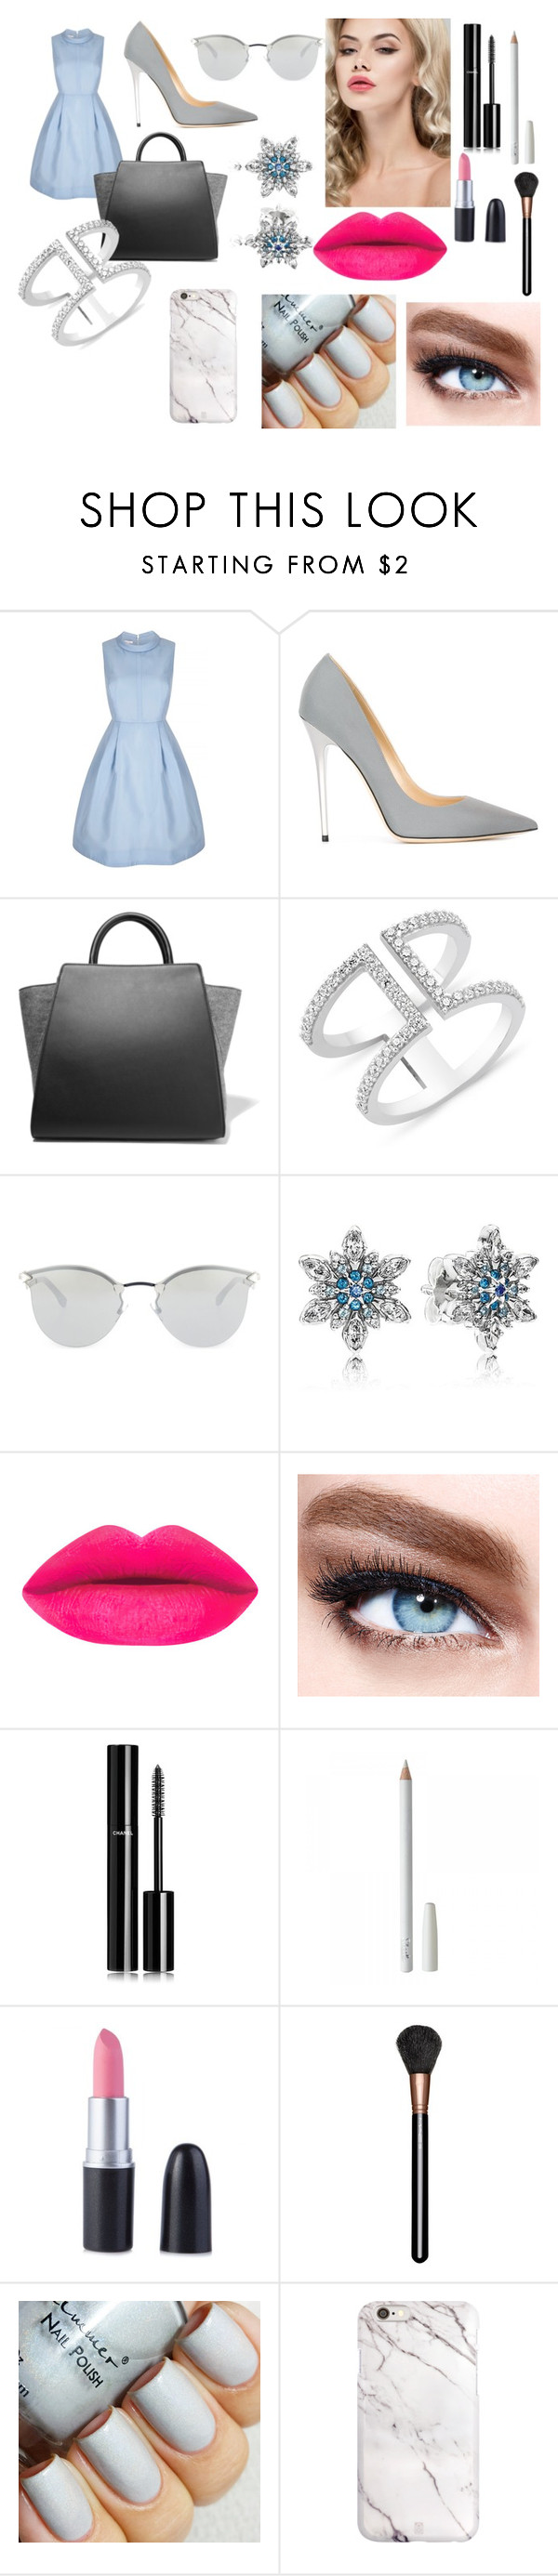 """""""Clair"""" by bonster-monster on Polyvore featuring beauty, Jimmy Choo, ZAC Zac Posen, Fendi, Pandora, Maybelline, Chanel and MAC Cosmetics"""